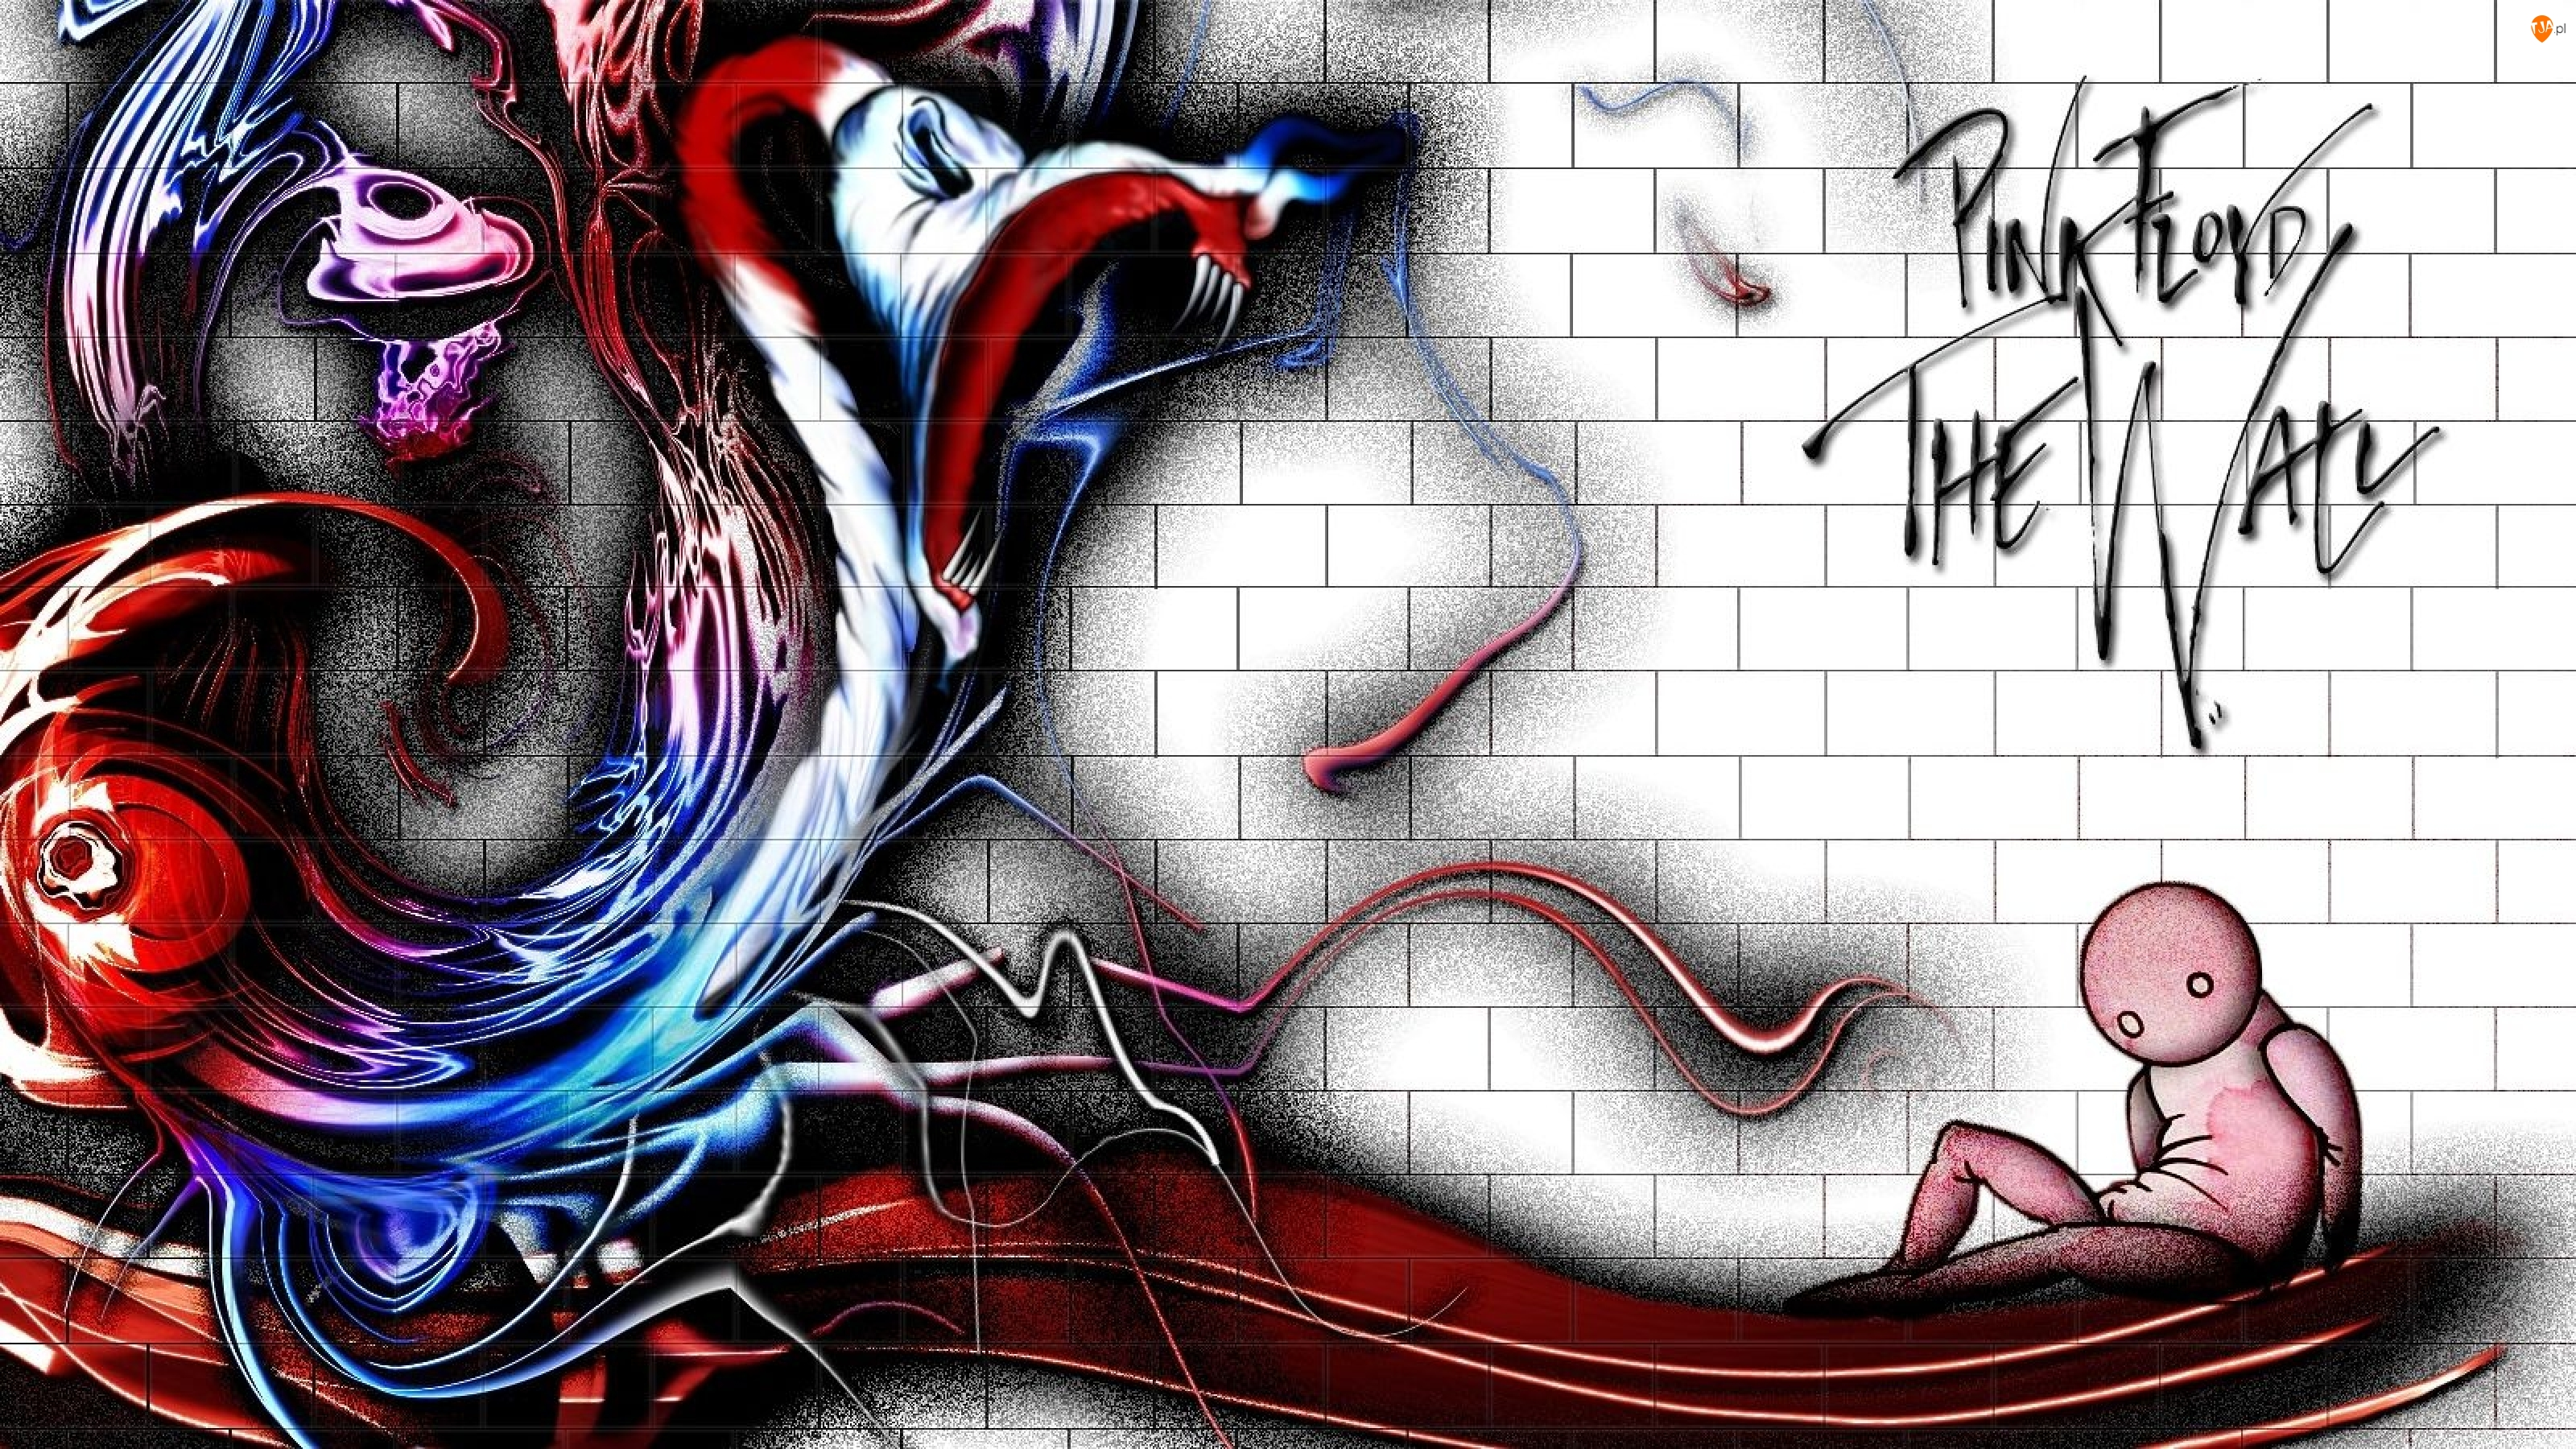 Grafika, Pink Floyd, The Wall